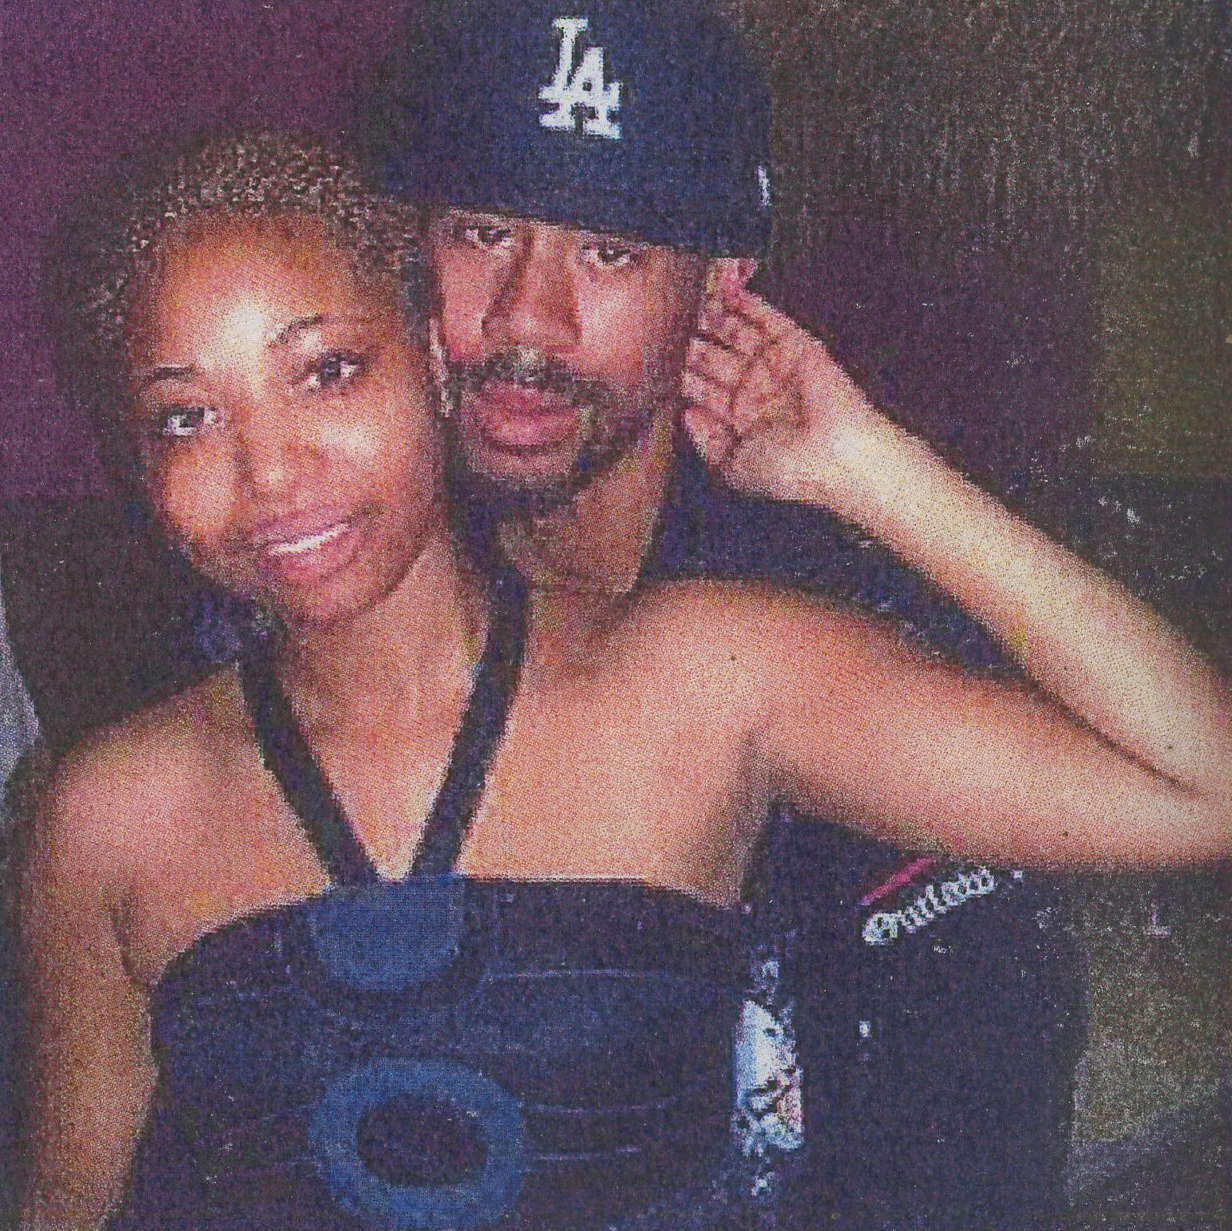 Jonathan Pitts ( background ) and girlfriend Nakeisha Finks were fatally shot execution style in his West Philadelphia home Aug. 29, 2009. Police have yet to charge